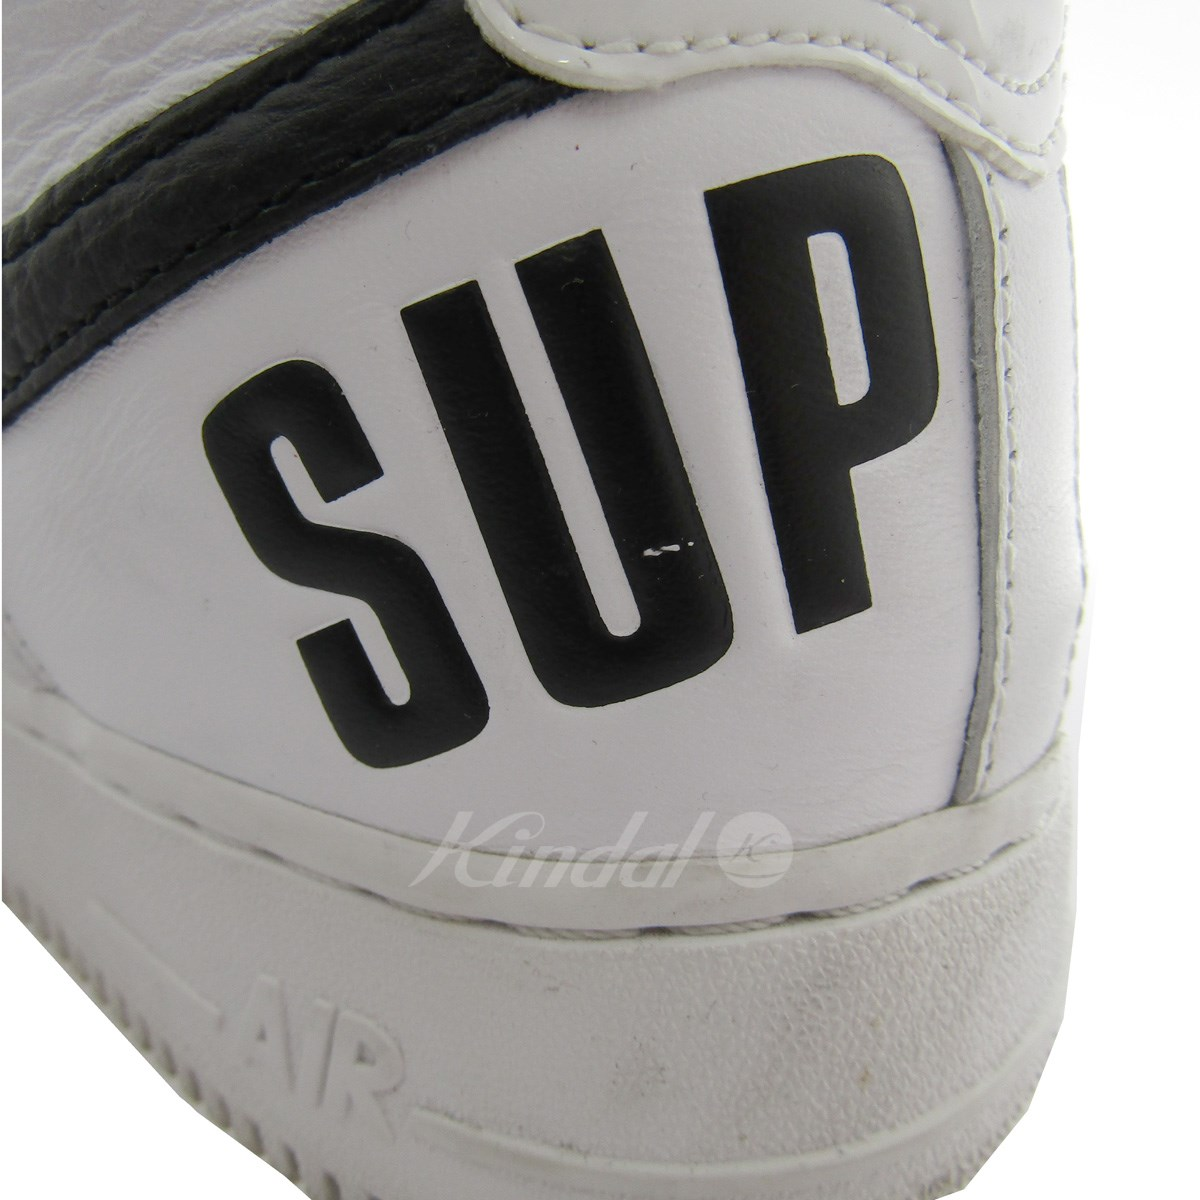 ... SUPREME X NIKE 698,696-100 AIR FORCE 1 HIGH SUPREME SP sneakers white  size: